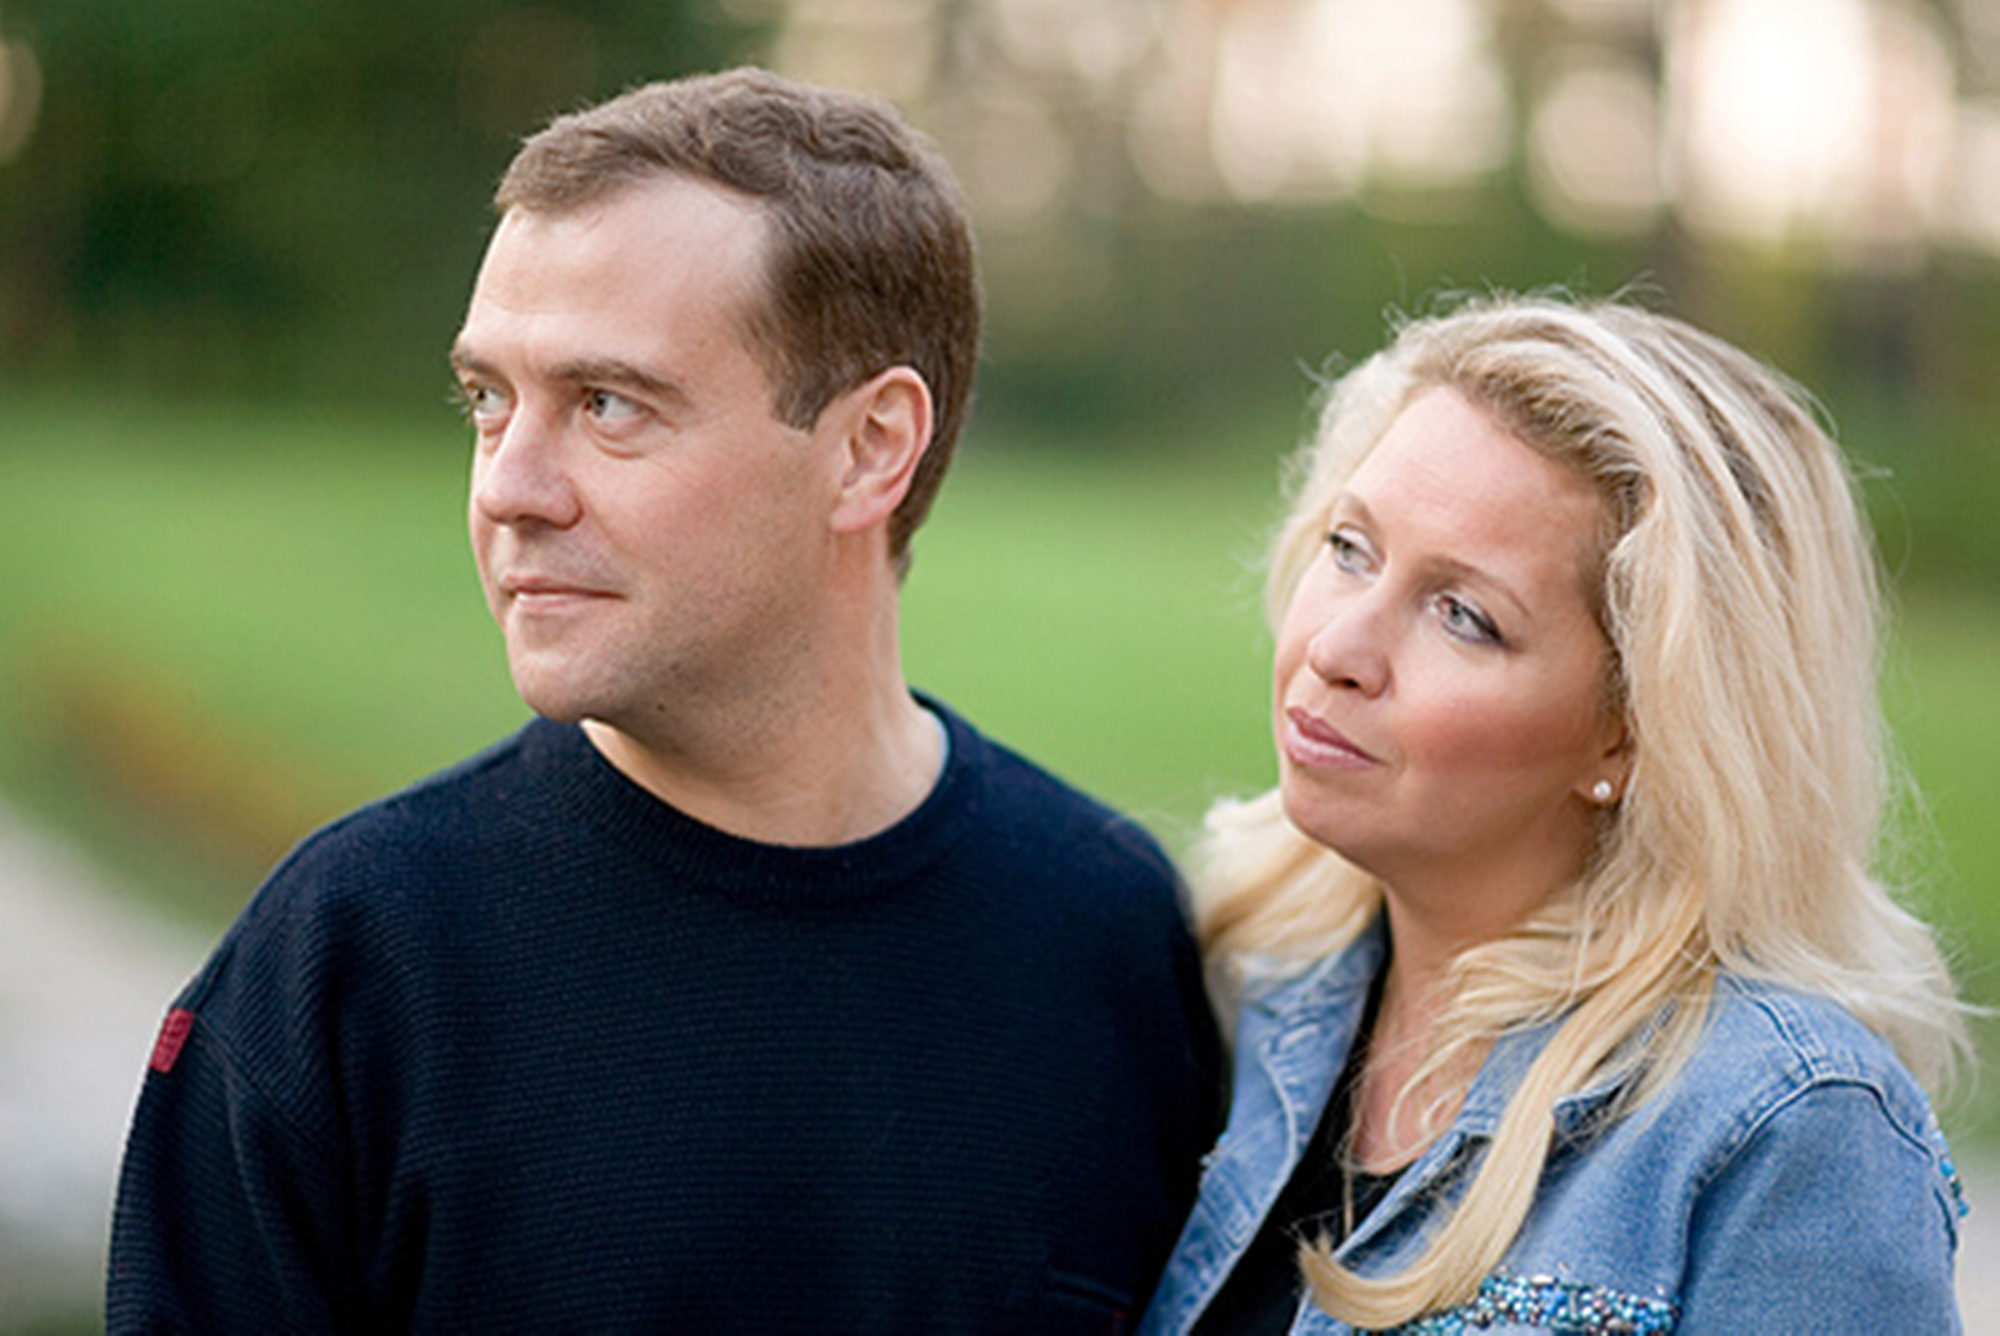 Dmitry Medvedev and his wife Svetlana Medvedeva